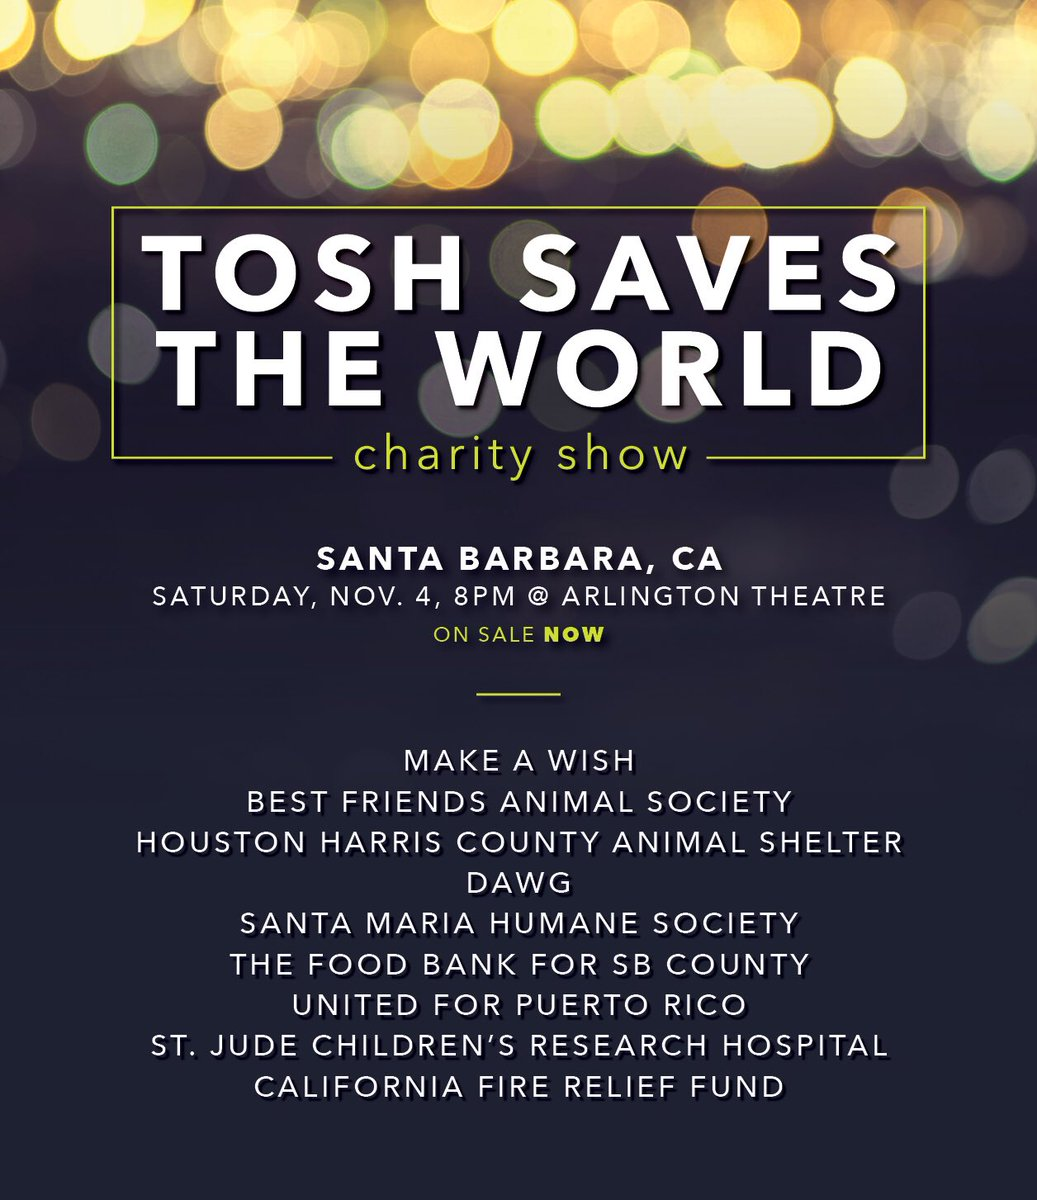 come see me and my friends do stand up in santa barbara to help these great charities!! https://t.co/DaG5pEuqU3 https://t.co/rvA7maNOeB